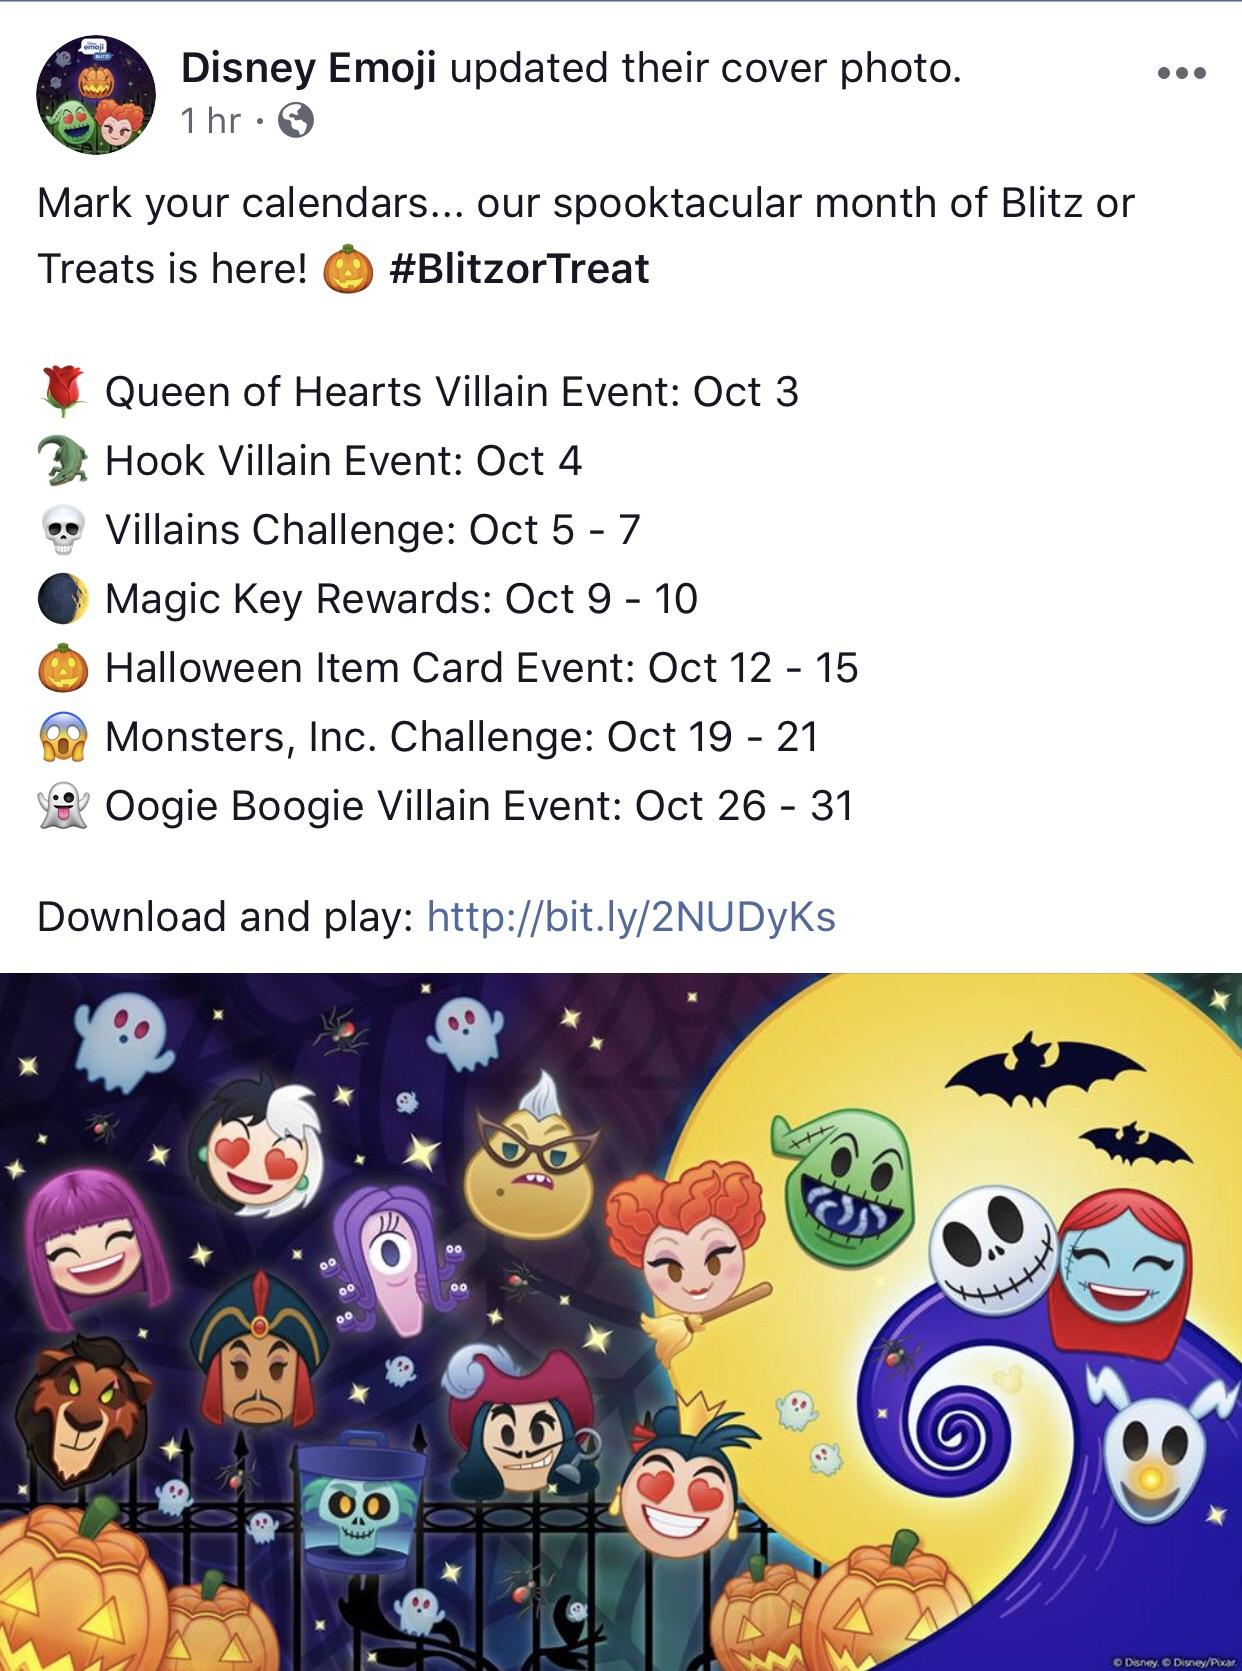 So Glad They're Giving Us The Rundown Every Month pertaining to Emoji Blitz Calendar